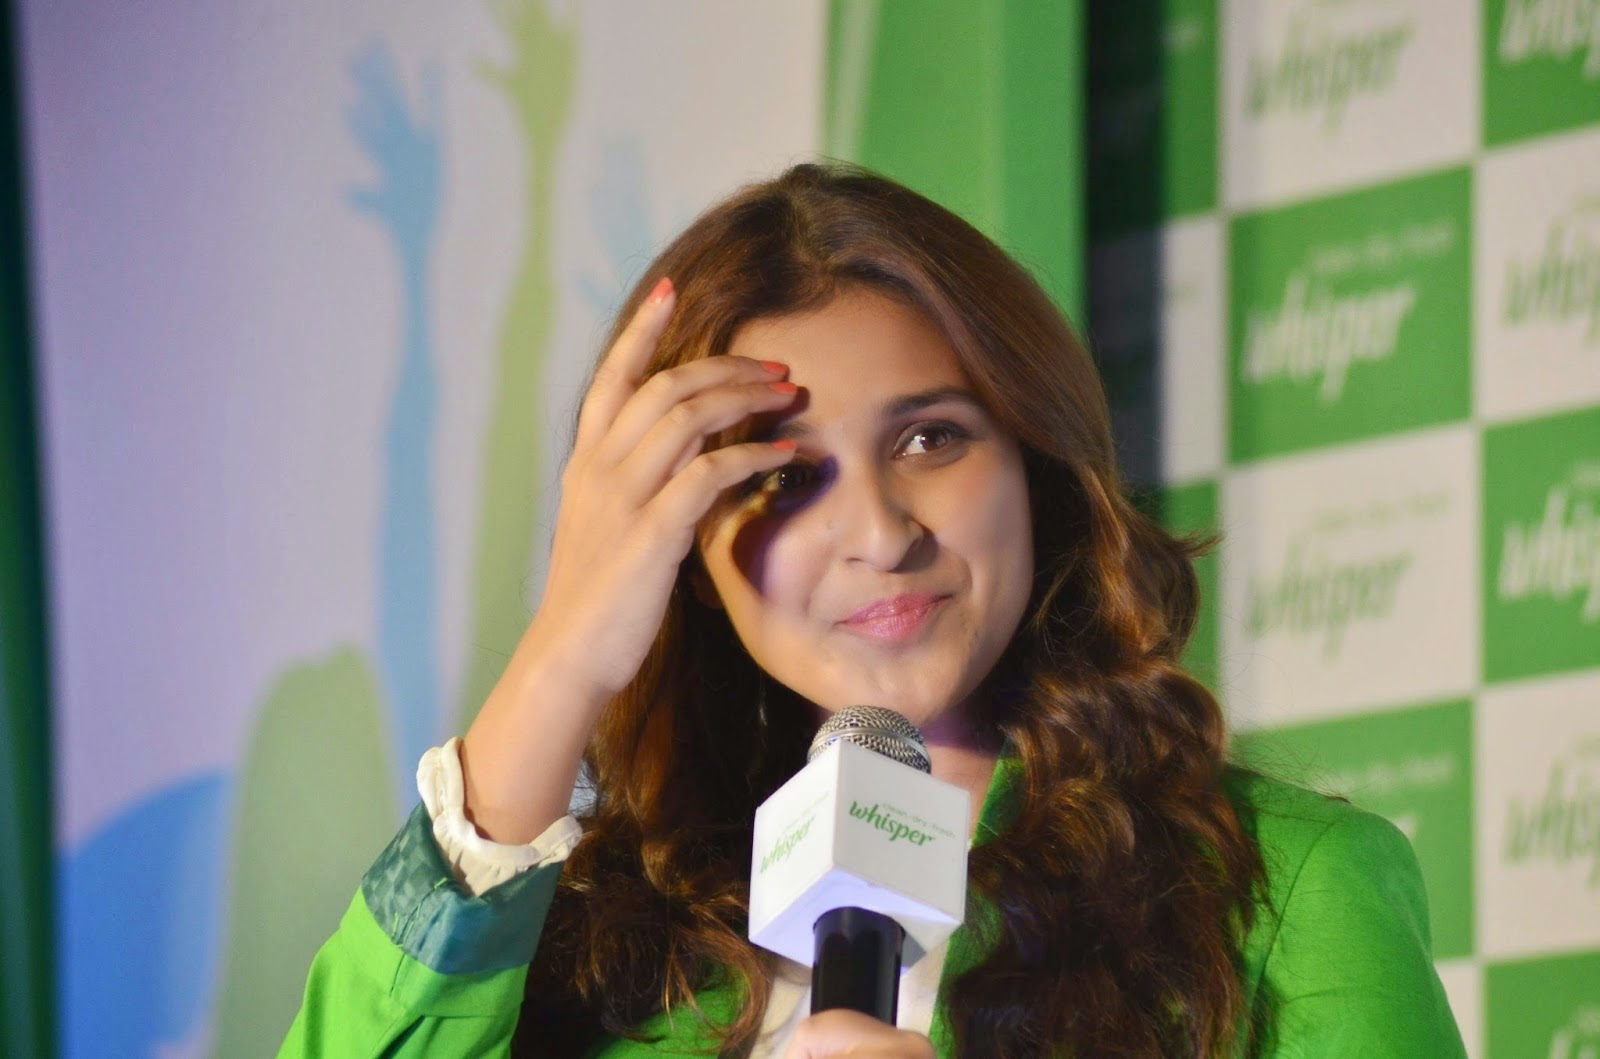 Actress Parineeti Chopra unveils the all new Whisper campaign